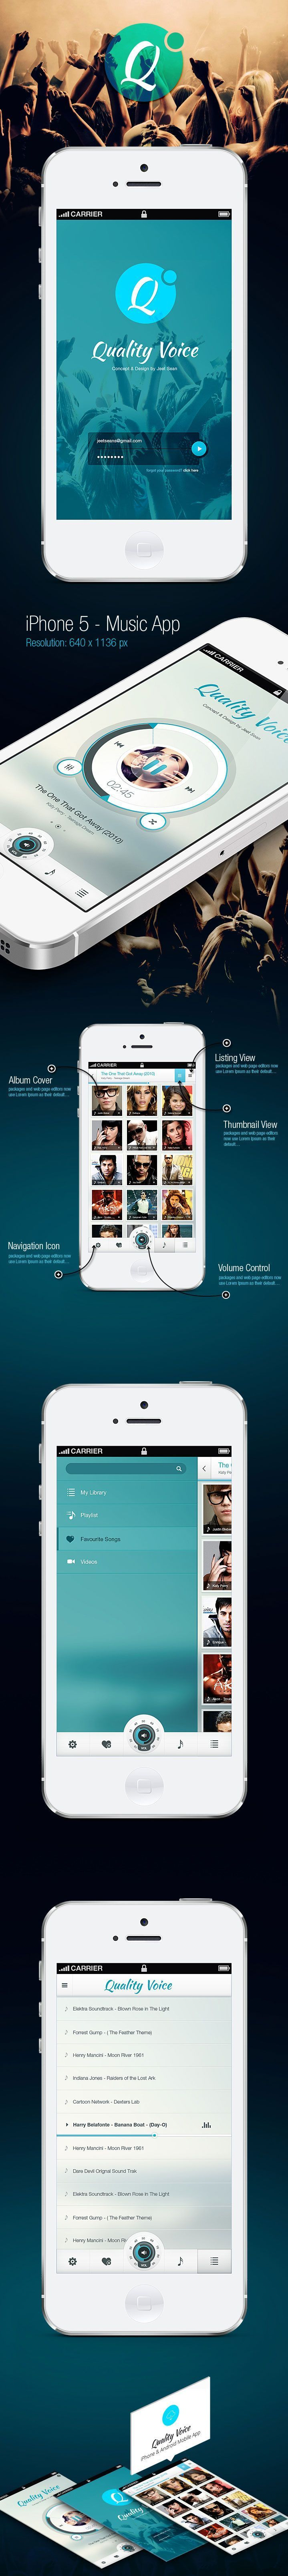 Inspiration mobile #1 : des applications et du web design ! | Blog du Webdesign